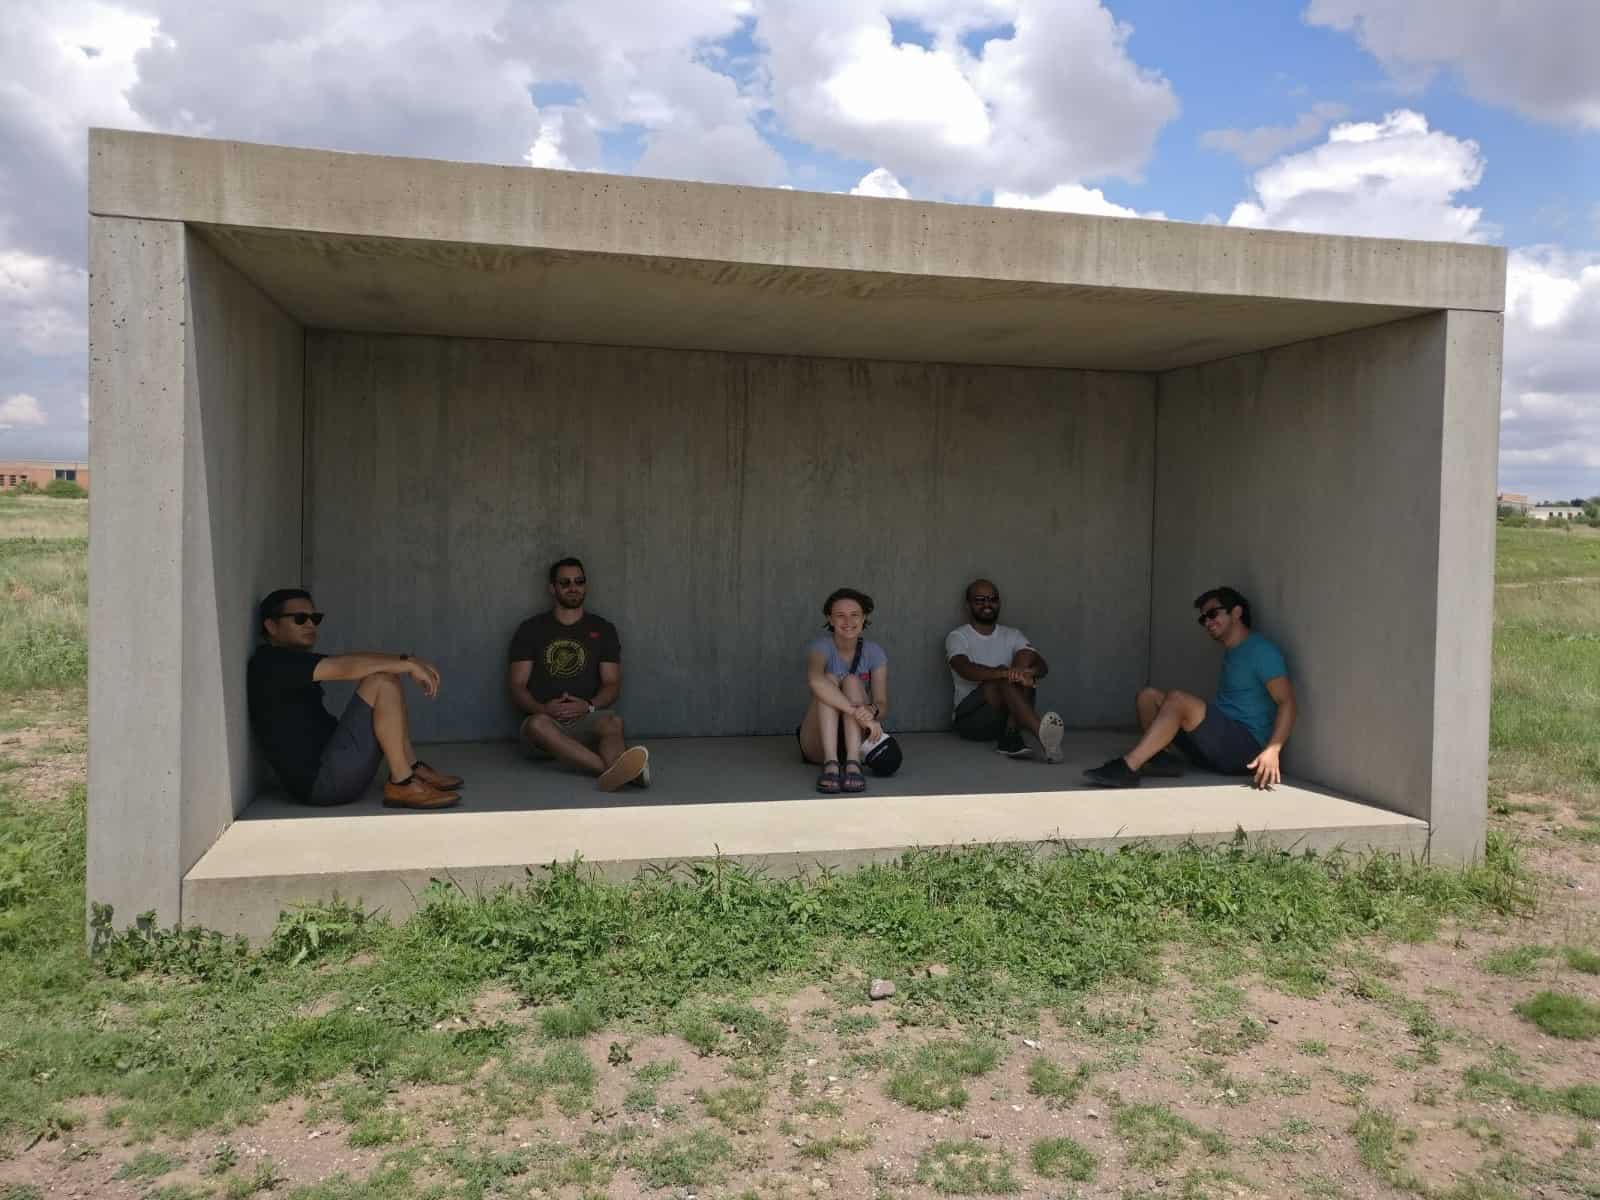 Produktworks team sitting inside a concrete art installation at Chinatti Marfa